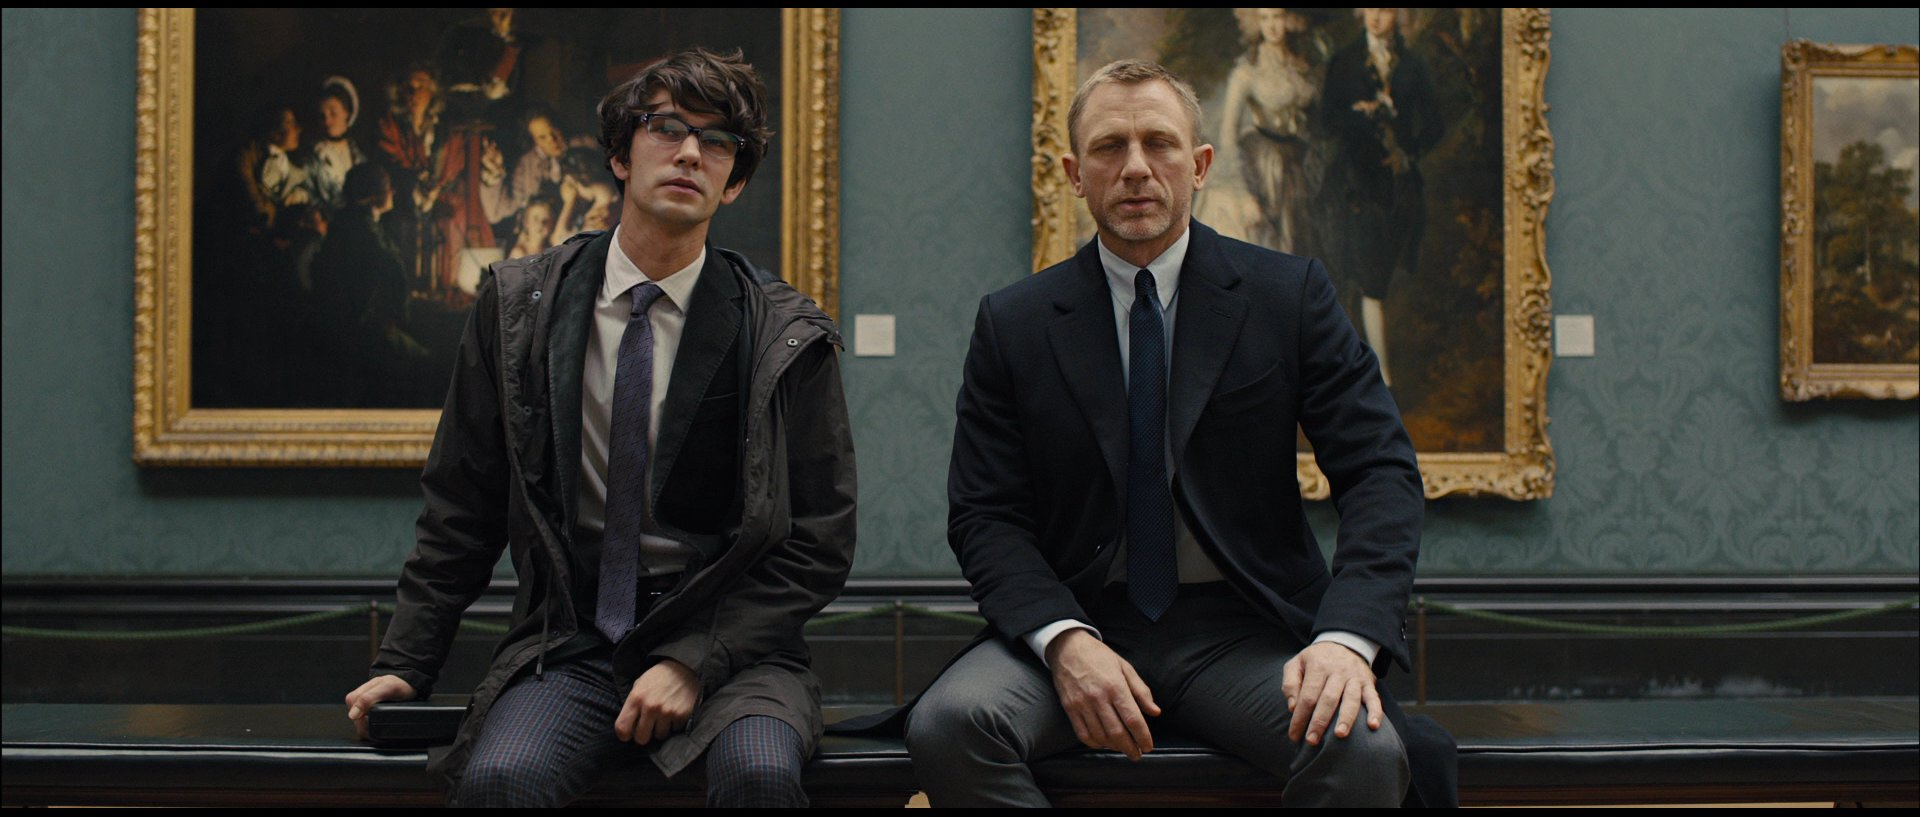 Skyfall-on-235-Screen.jpg